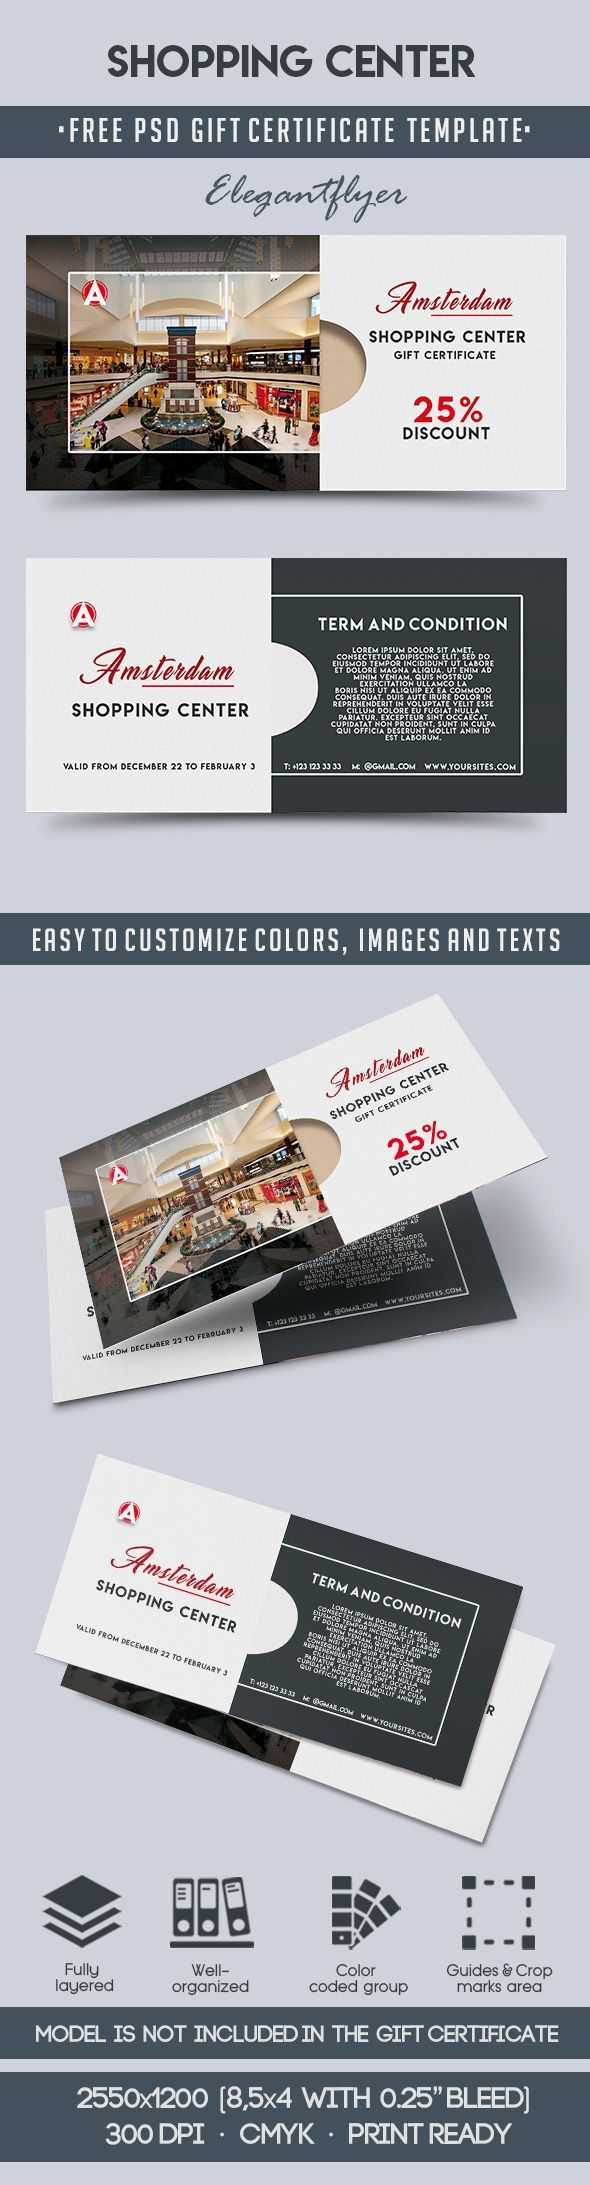 shopping center free gift certificate psd template